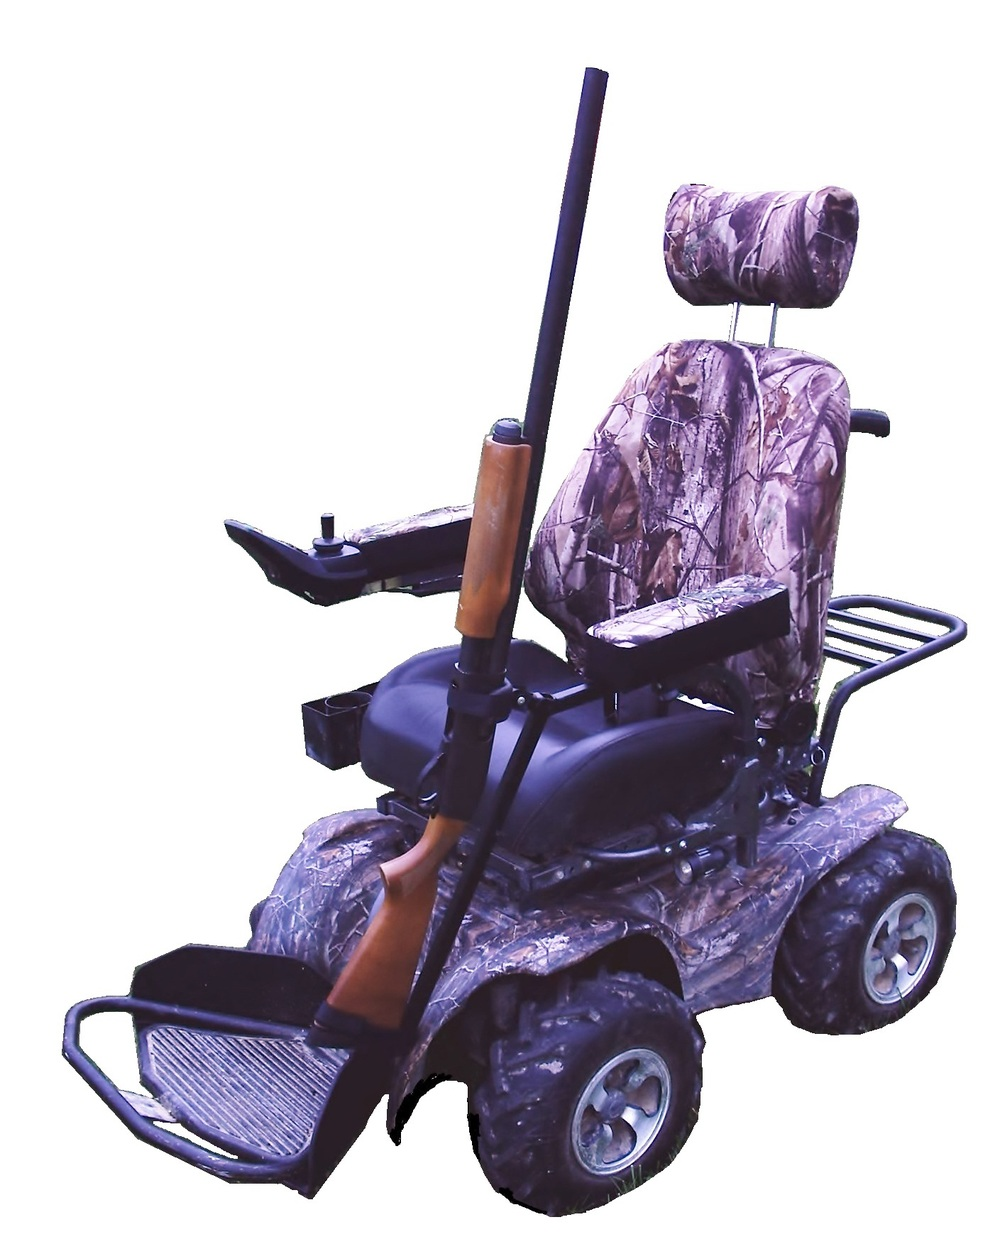 Camo Lift Chair: Rehab And Mobility Systems-Outdoor Mobility